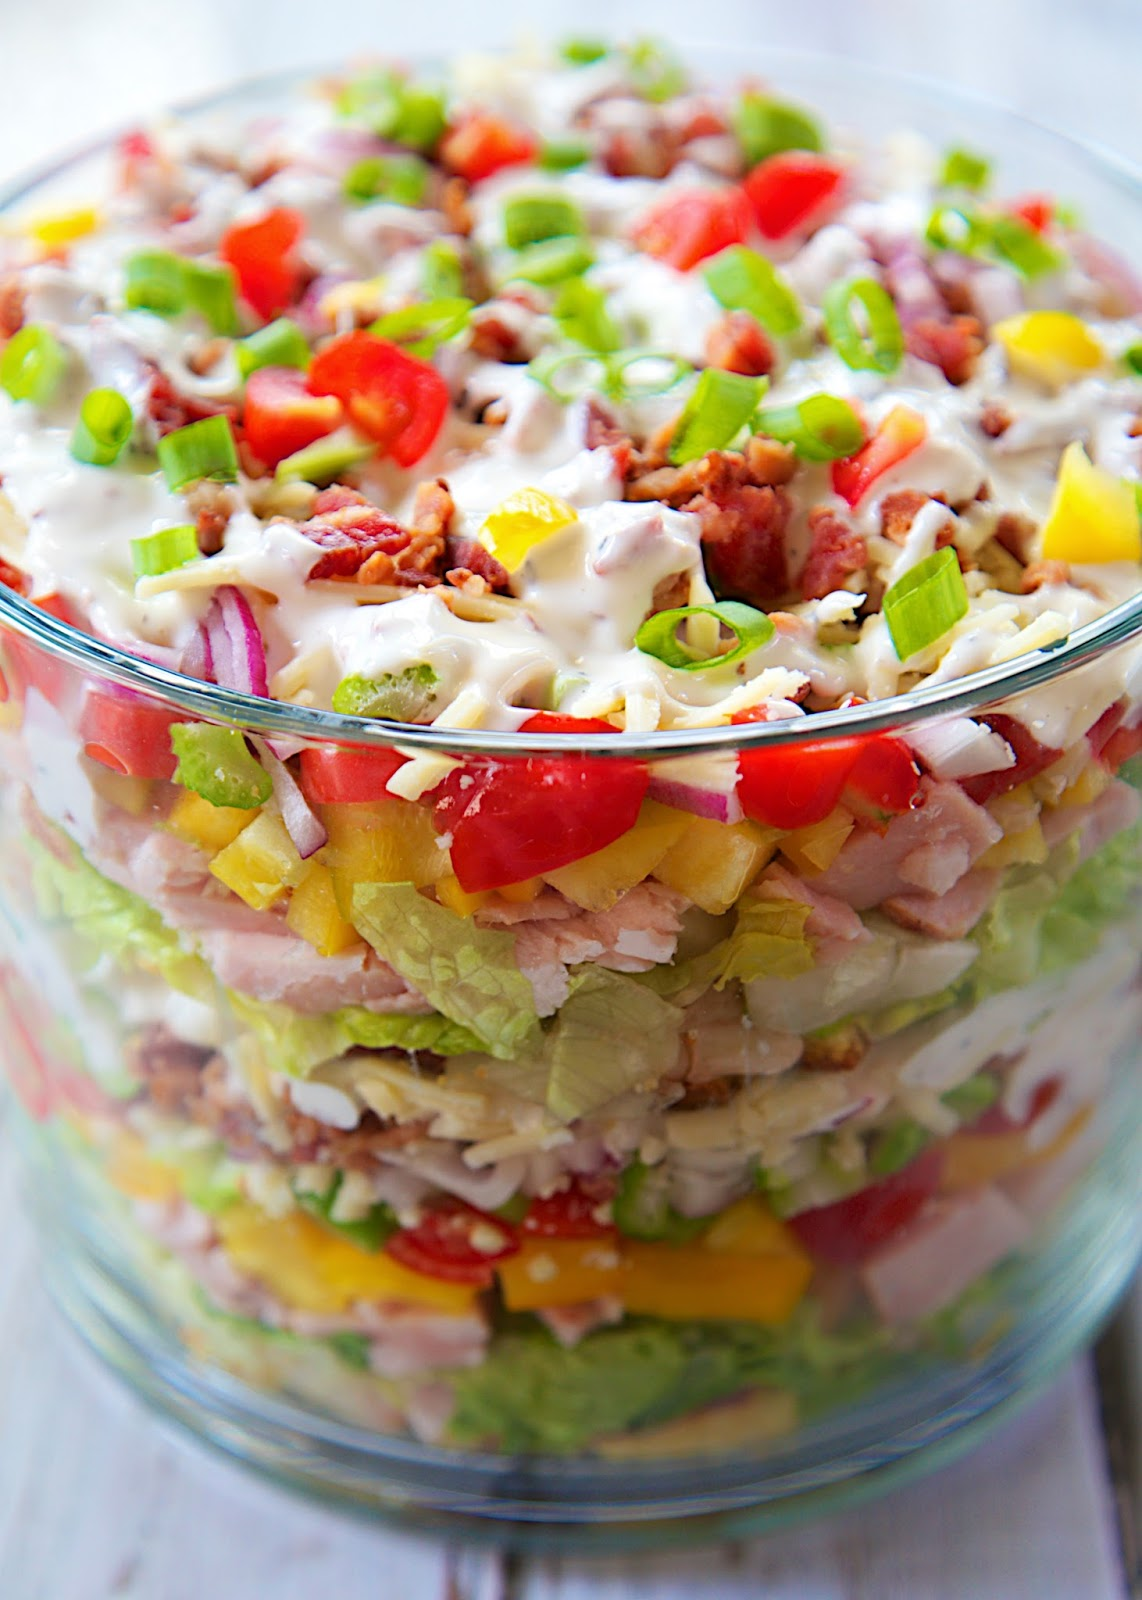 Cornbread & Turkey Layered Salad - Plain Chicken